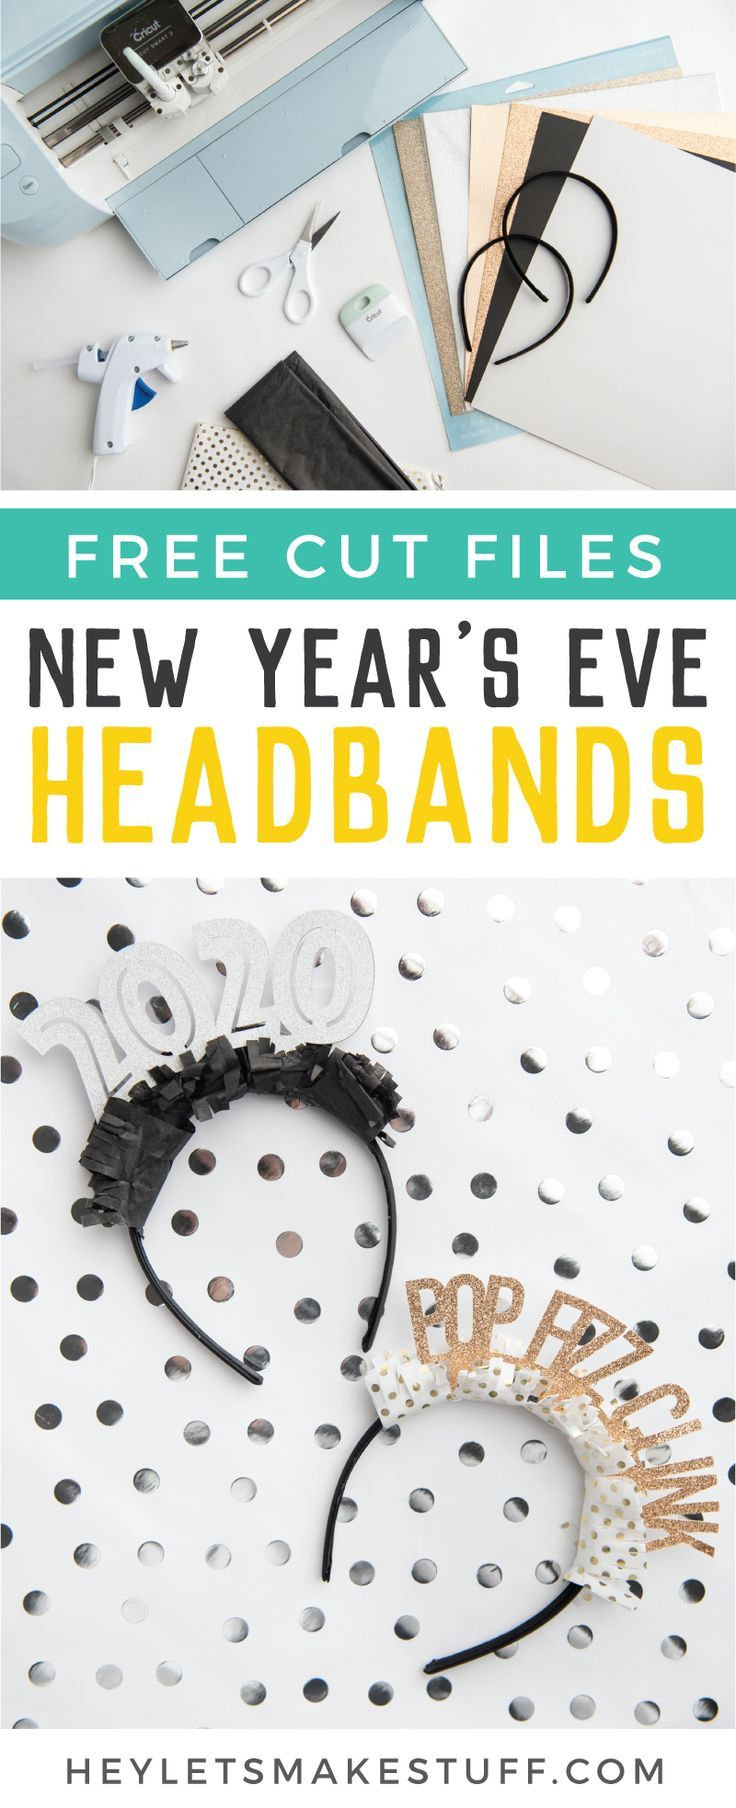 Make these New Year's Eve party headbands using supplies from JOANN and your Cricut or other electronic cutting machine! Perfect for New Year's Eve celebrations and ringing in the new year! #newyears #newyearseve #NYE #newyearseveparty #partyideas